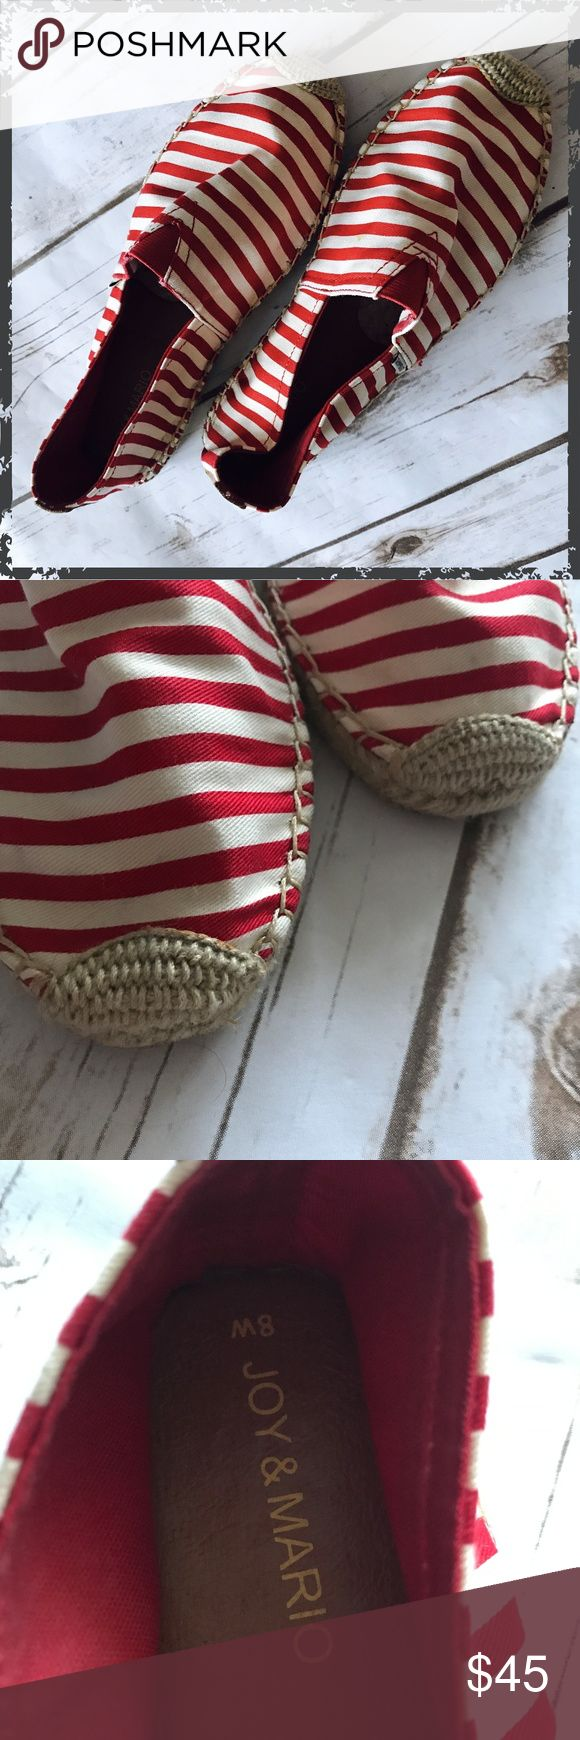 Joy & Mario Red White Striped Flat Espadrilles Size 8 Women's (not wide) Never worn, has a tiny yellowing spot on the top of one foot (see photo) Very comfortable! **Please read first 2 comments** Joy & Mario Shoes Espadrilles